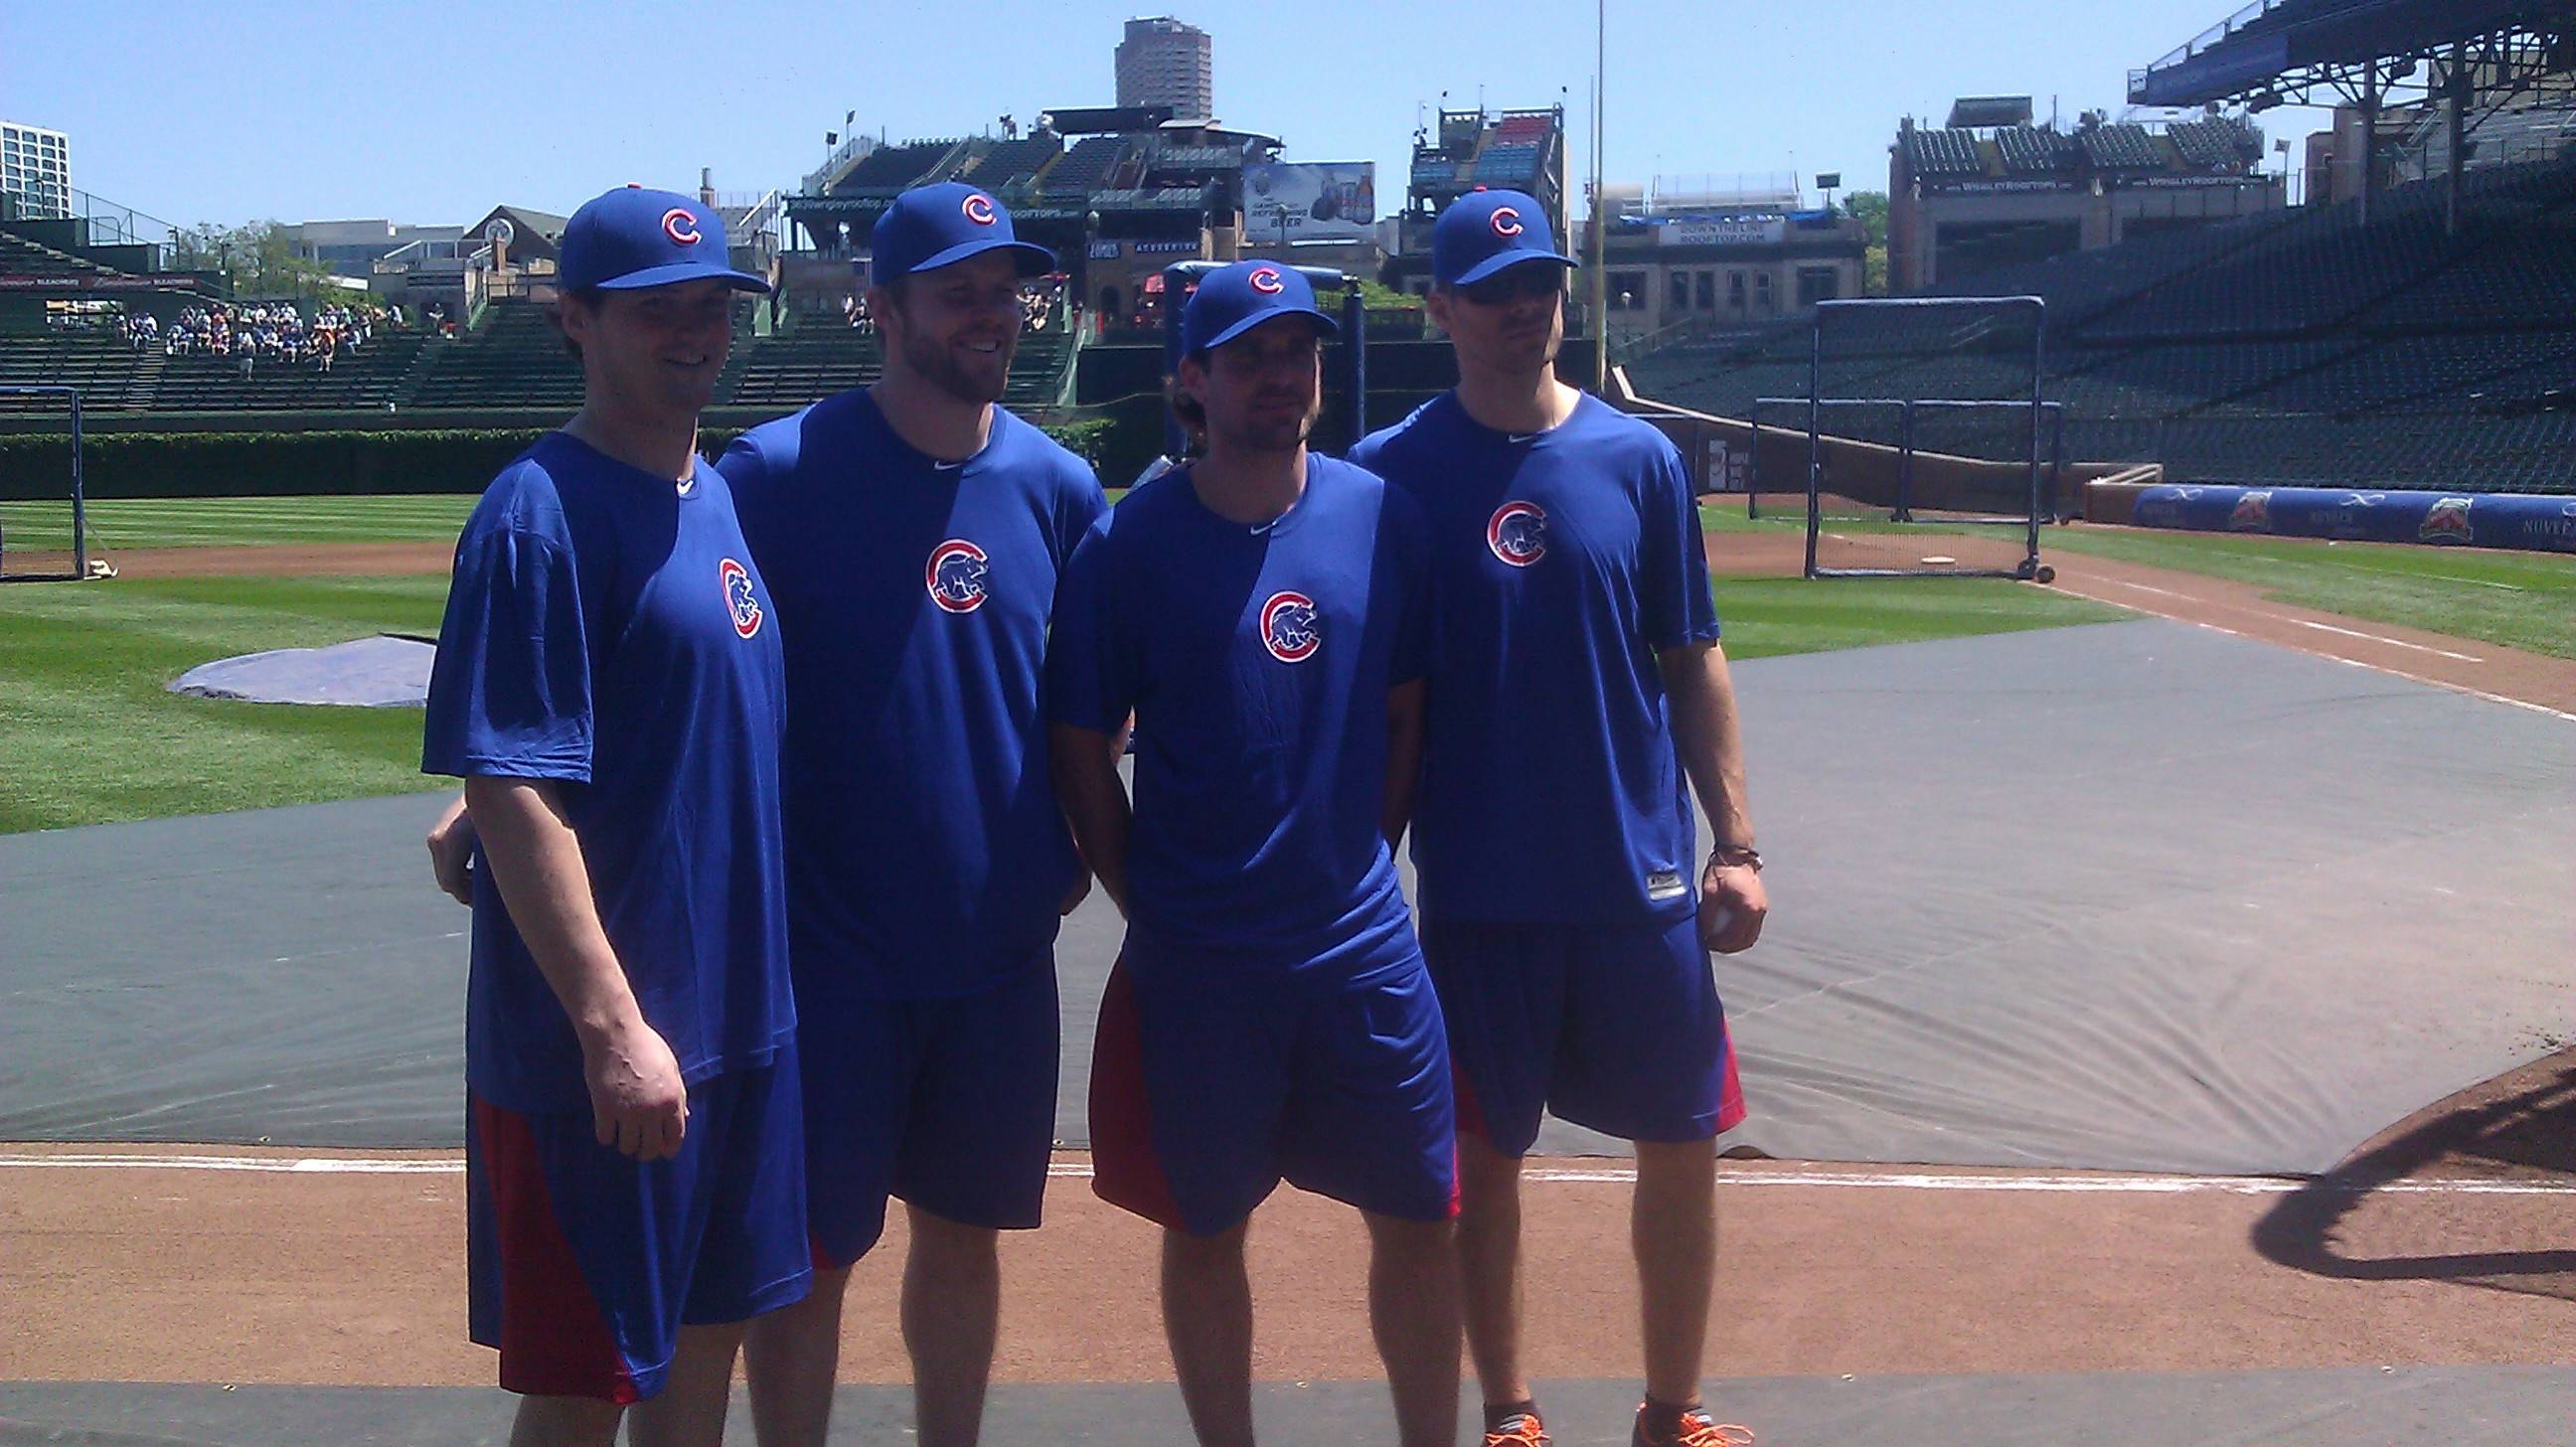 Four members of the Chicago Blackhawks, Sheldon Brookbank, left, Bryan Bickell, Patrick Sharp and Michal Handzus, tested their baseball skills Friday at Wrigley Field when they took part in batting practice.